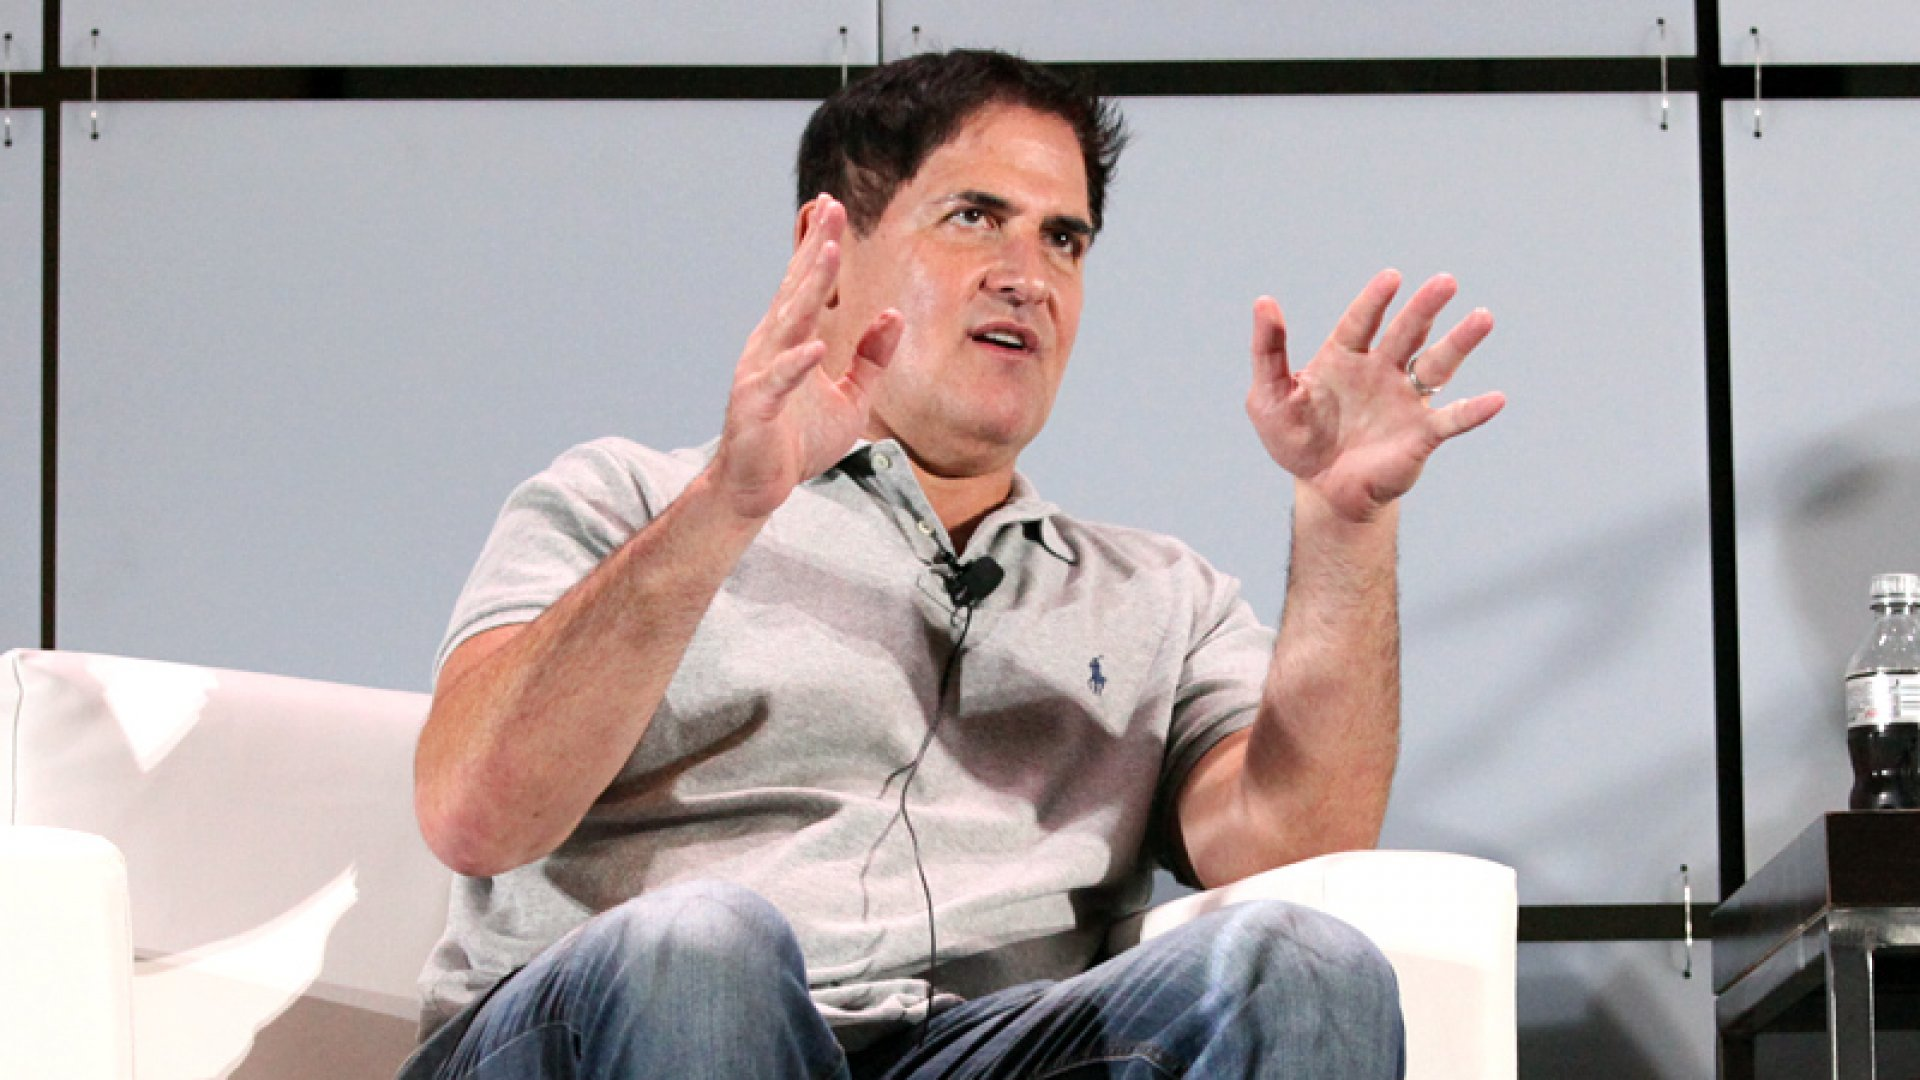 Mark Cuban Reaction: Comments 'Ineloquent' But 'Not Racist'